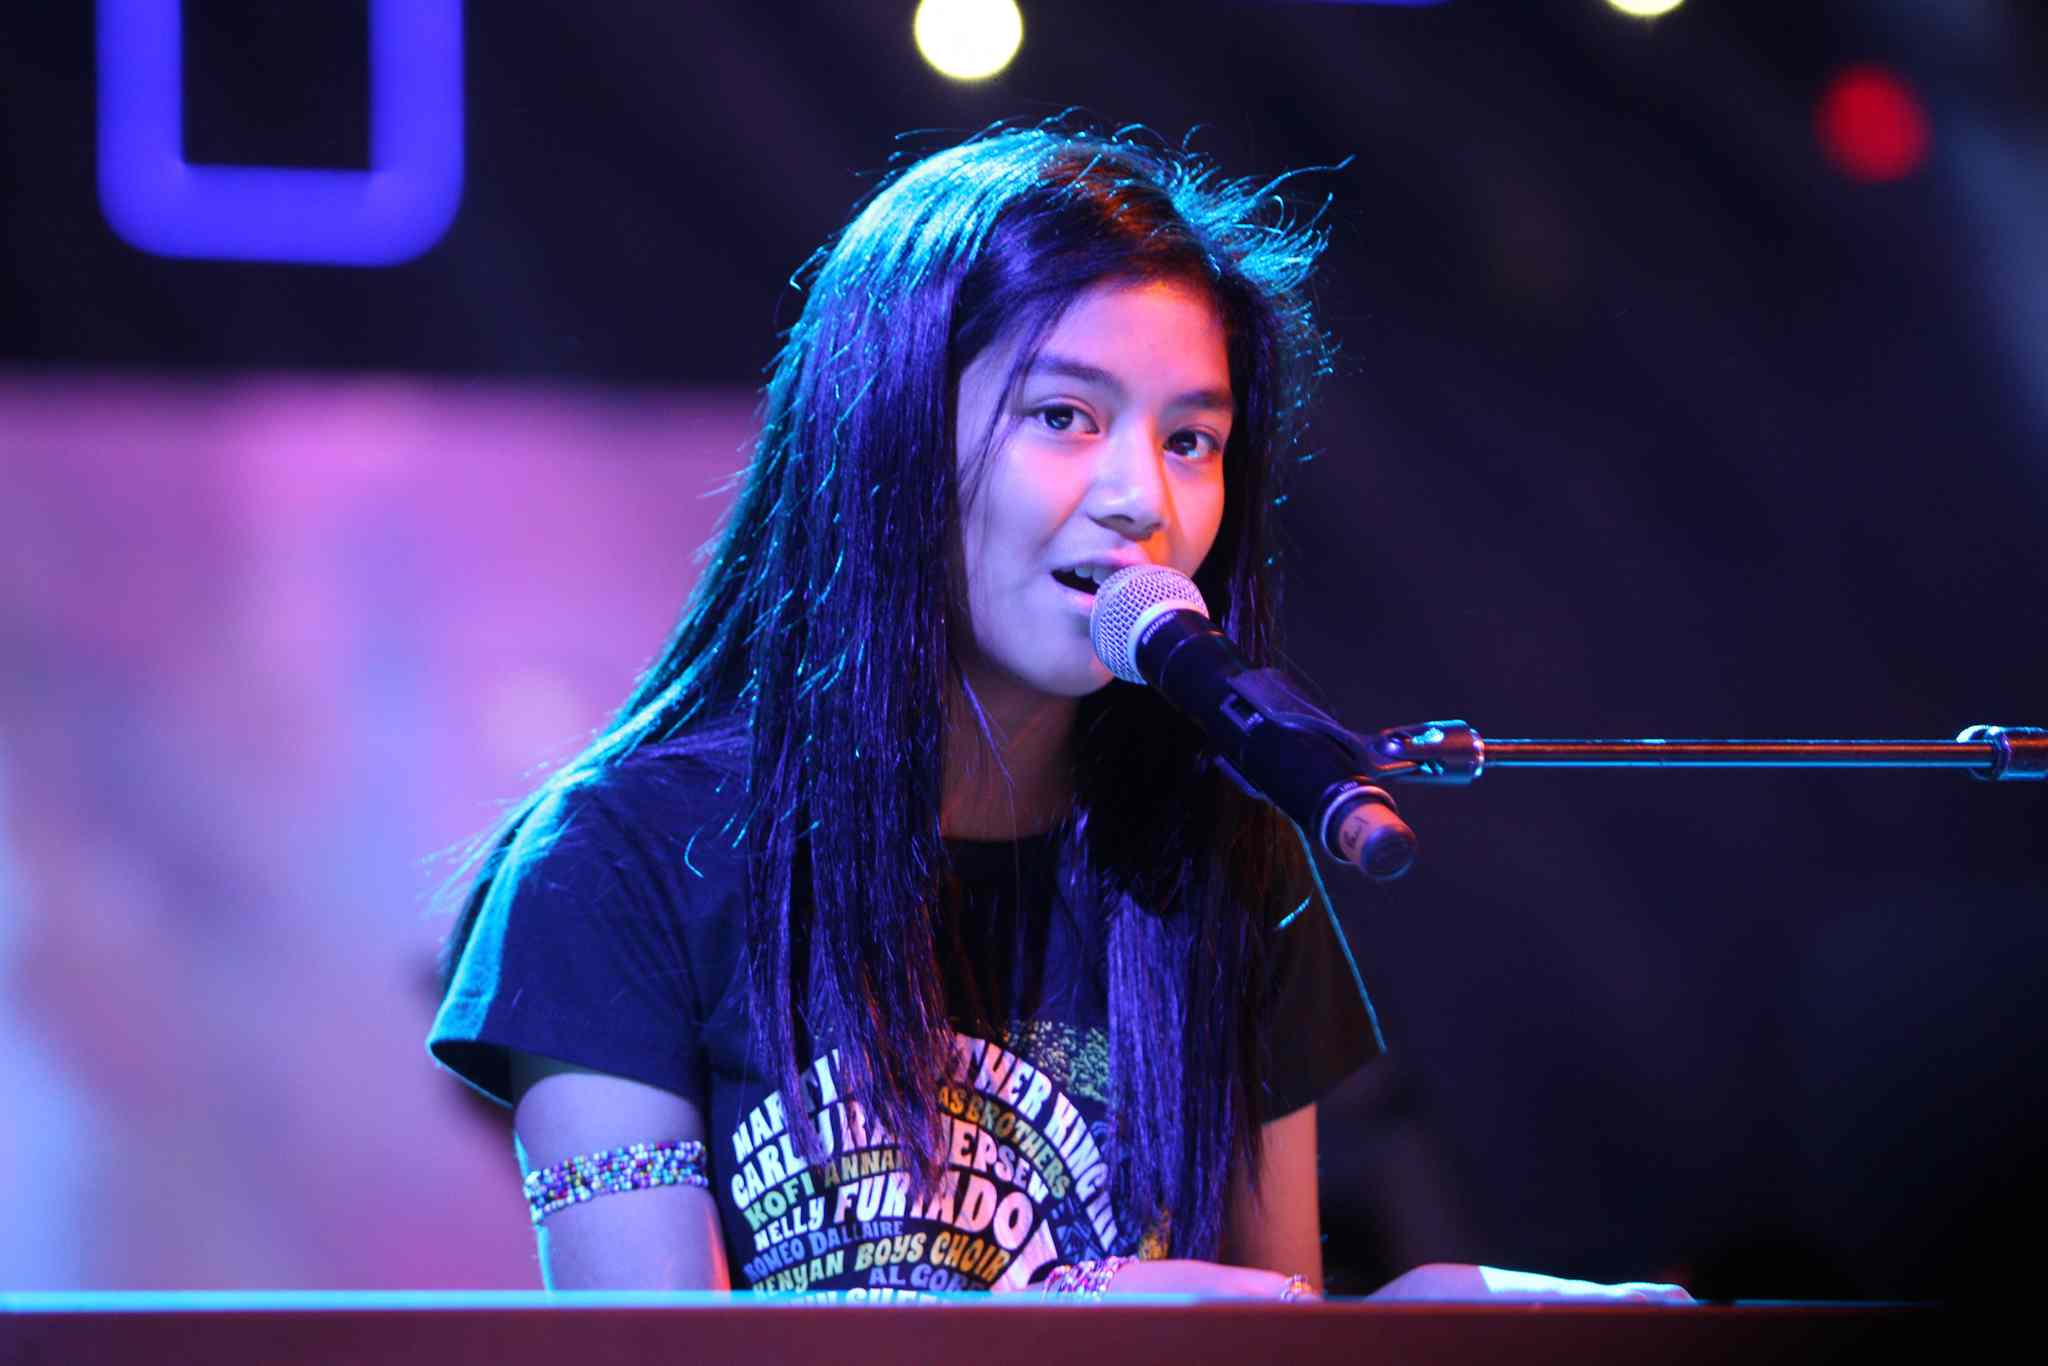 Maria Aragon performed at the 3rd annual We Day at MTS Centre in October.